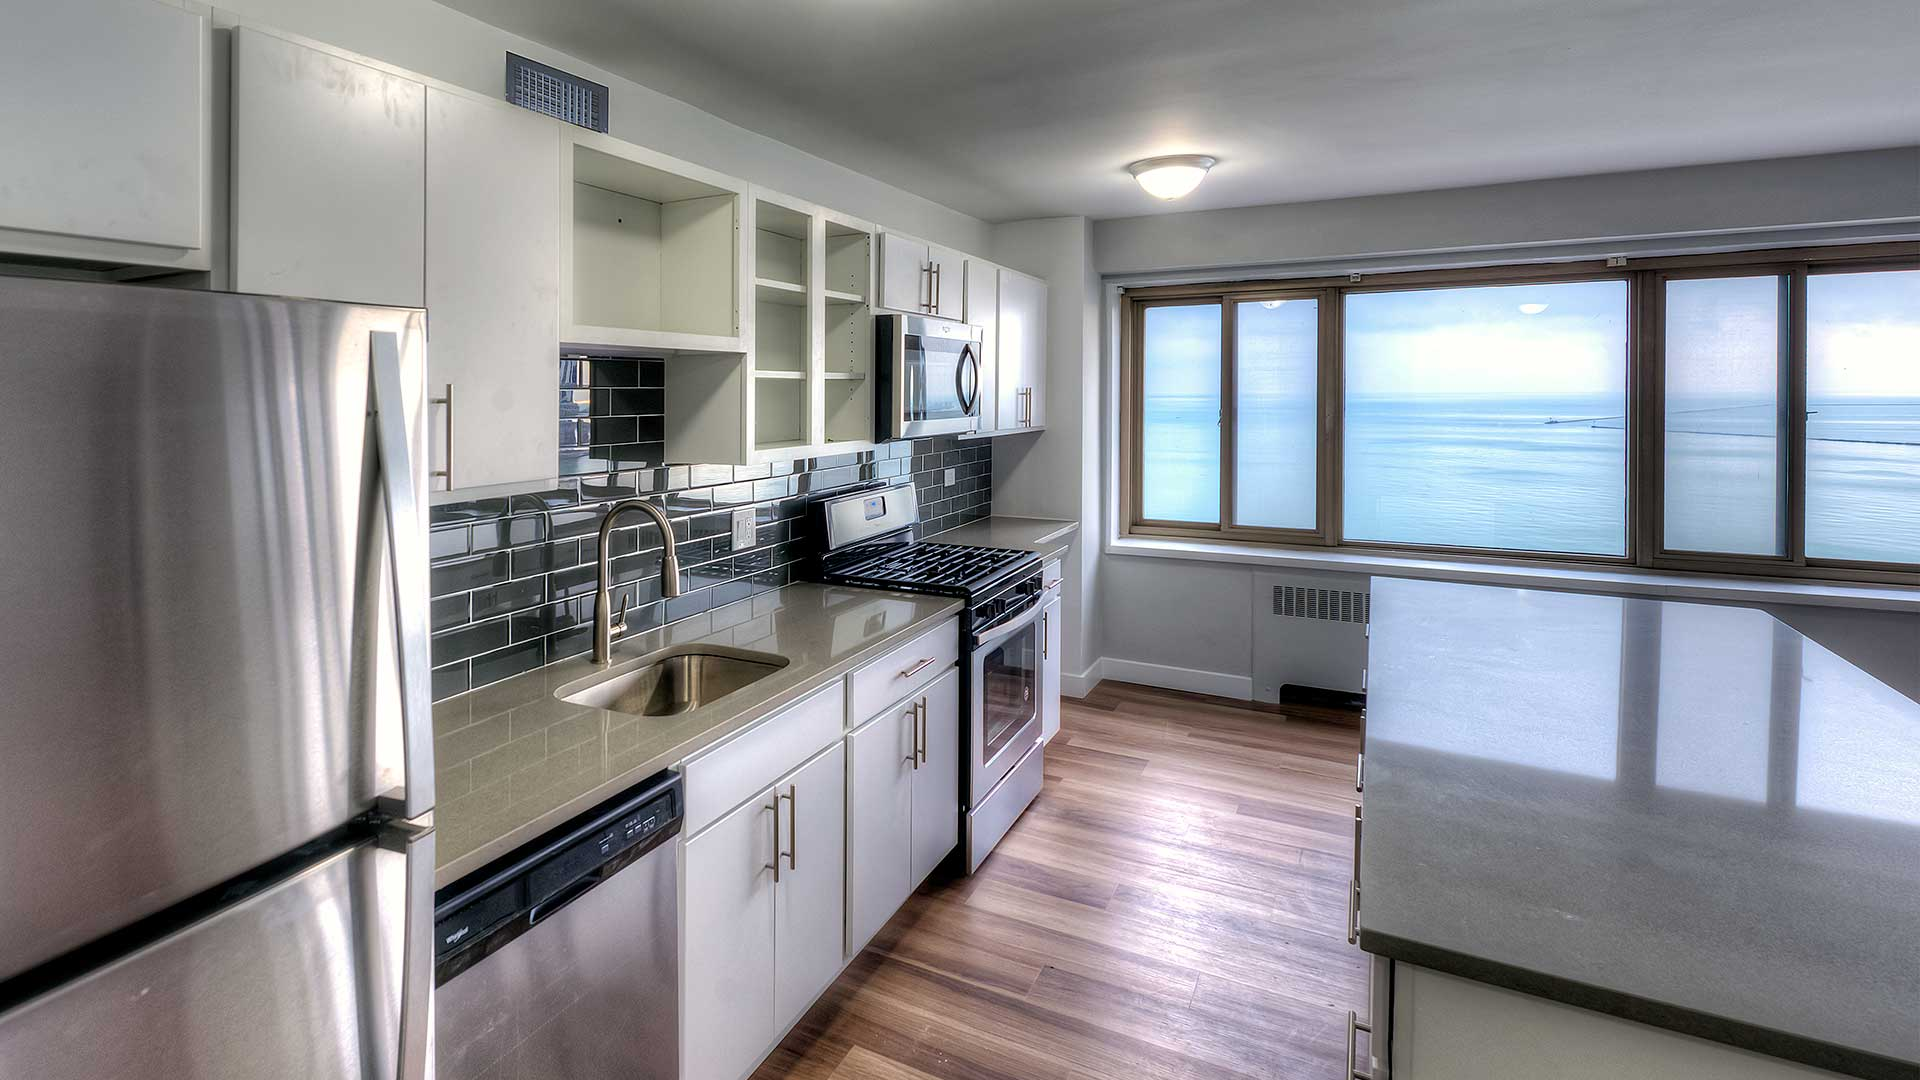 Standing at one end of residence kitchen, the stainless steel appliances and cabinets along the left and a kitchen island on the right. Lake Michigan is seen out the window on the far side of the room.